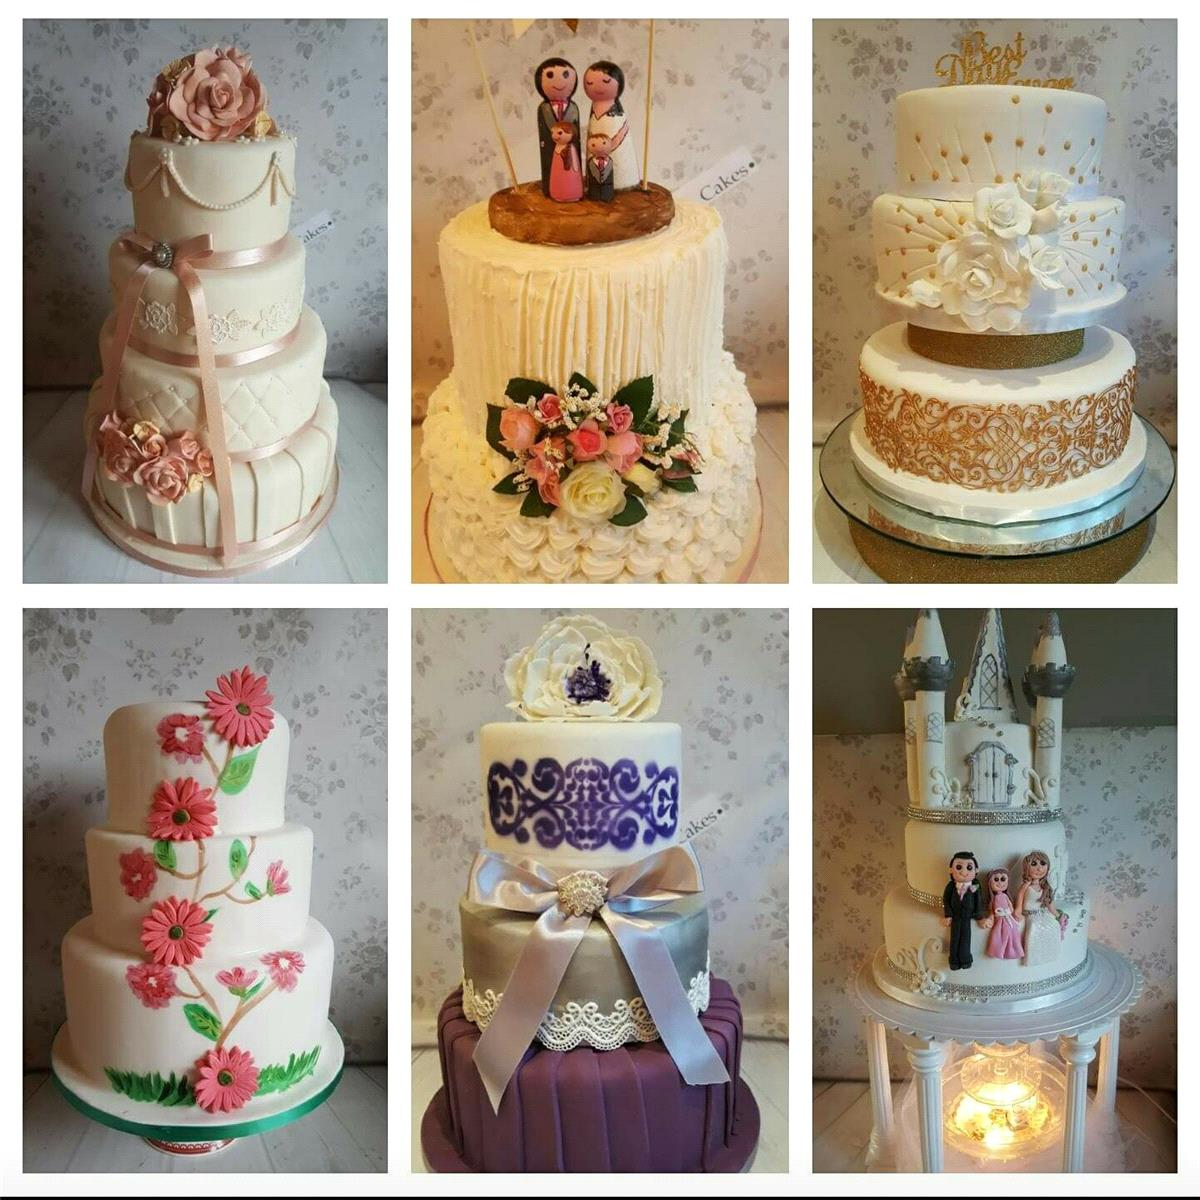 Lisa's Celebration Cakes, https://www.facebook.com/lisacelebration.cakes